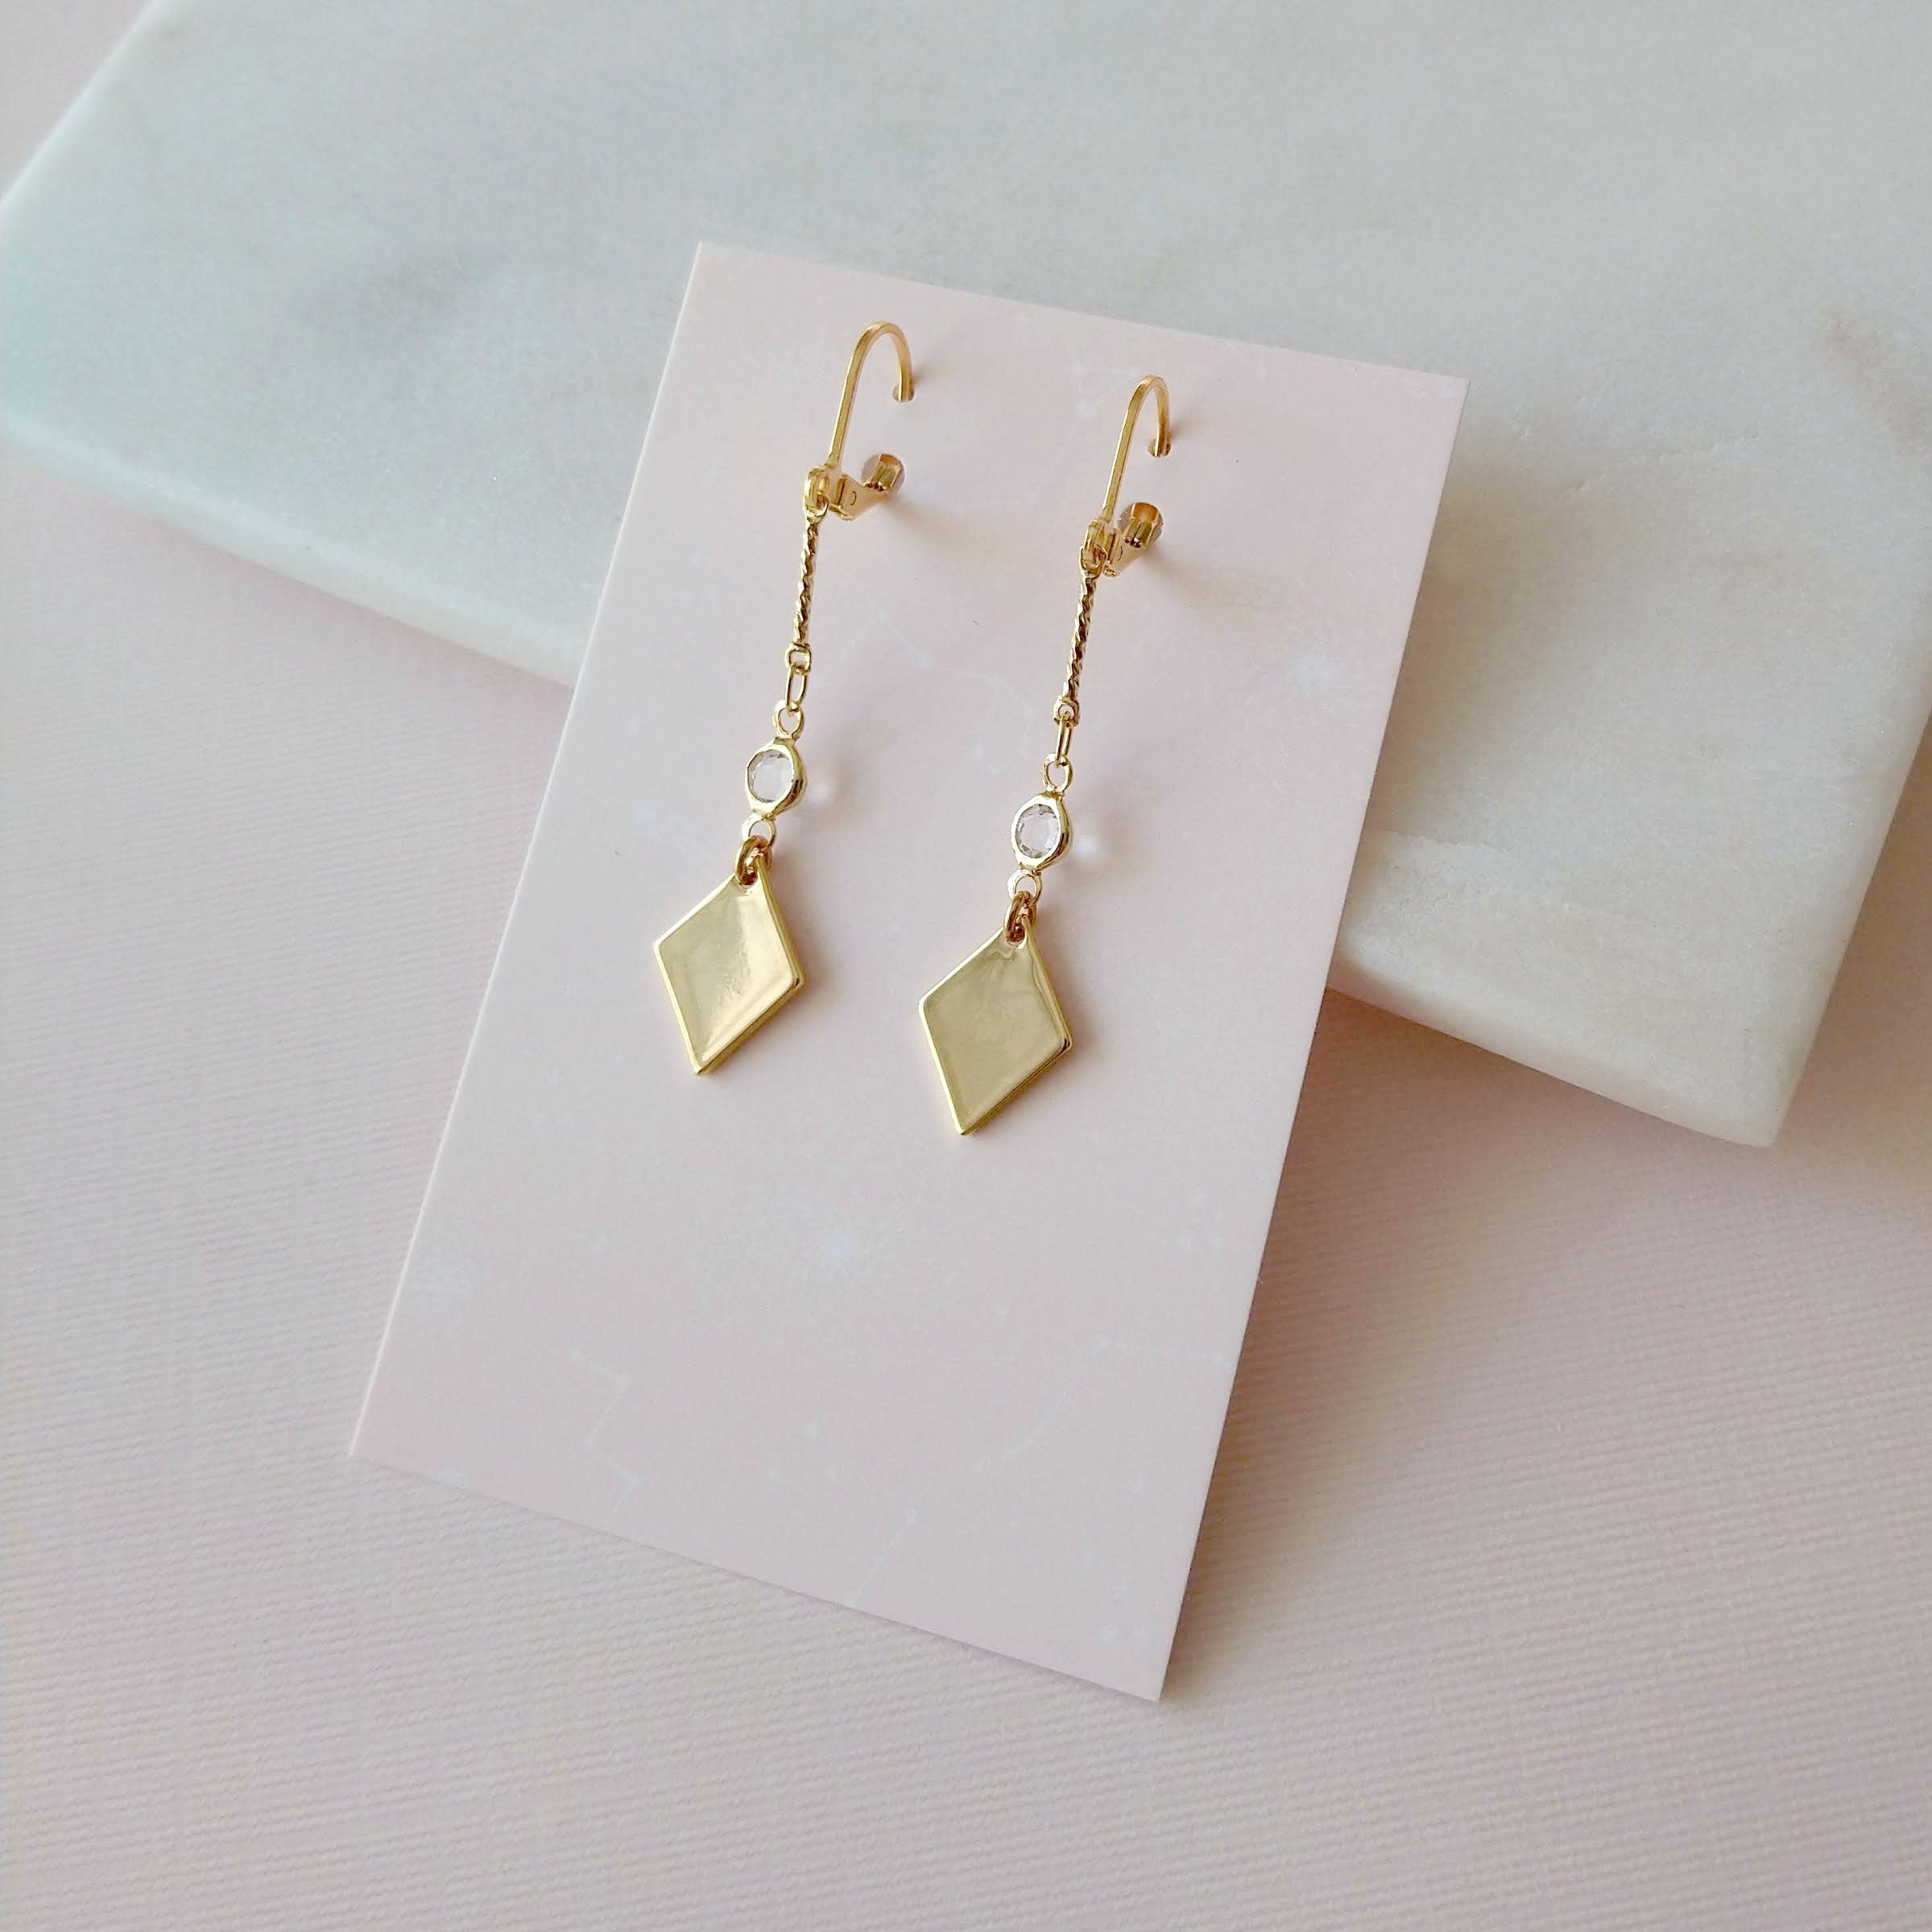 Gold and crystal earrings diamond shape